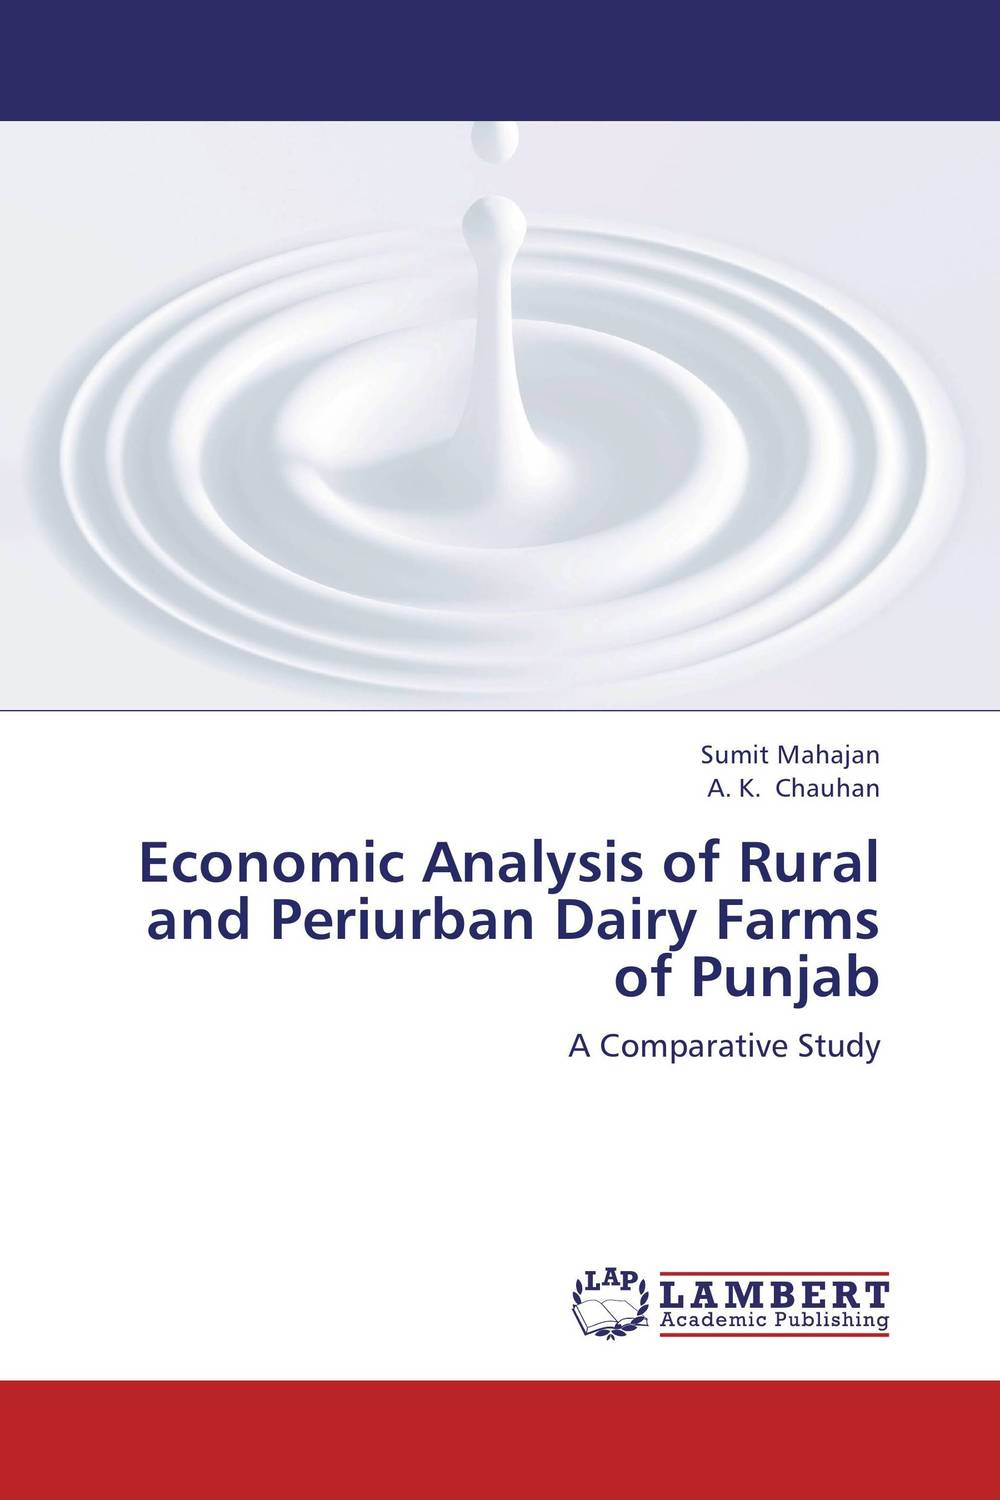 Economic Analysis of Rural and Periurban Dairy Farms of Punjab купить